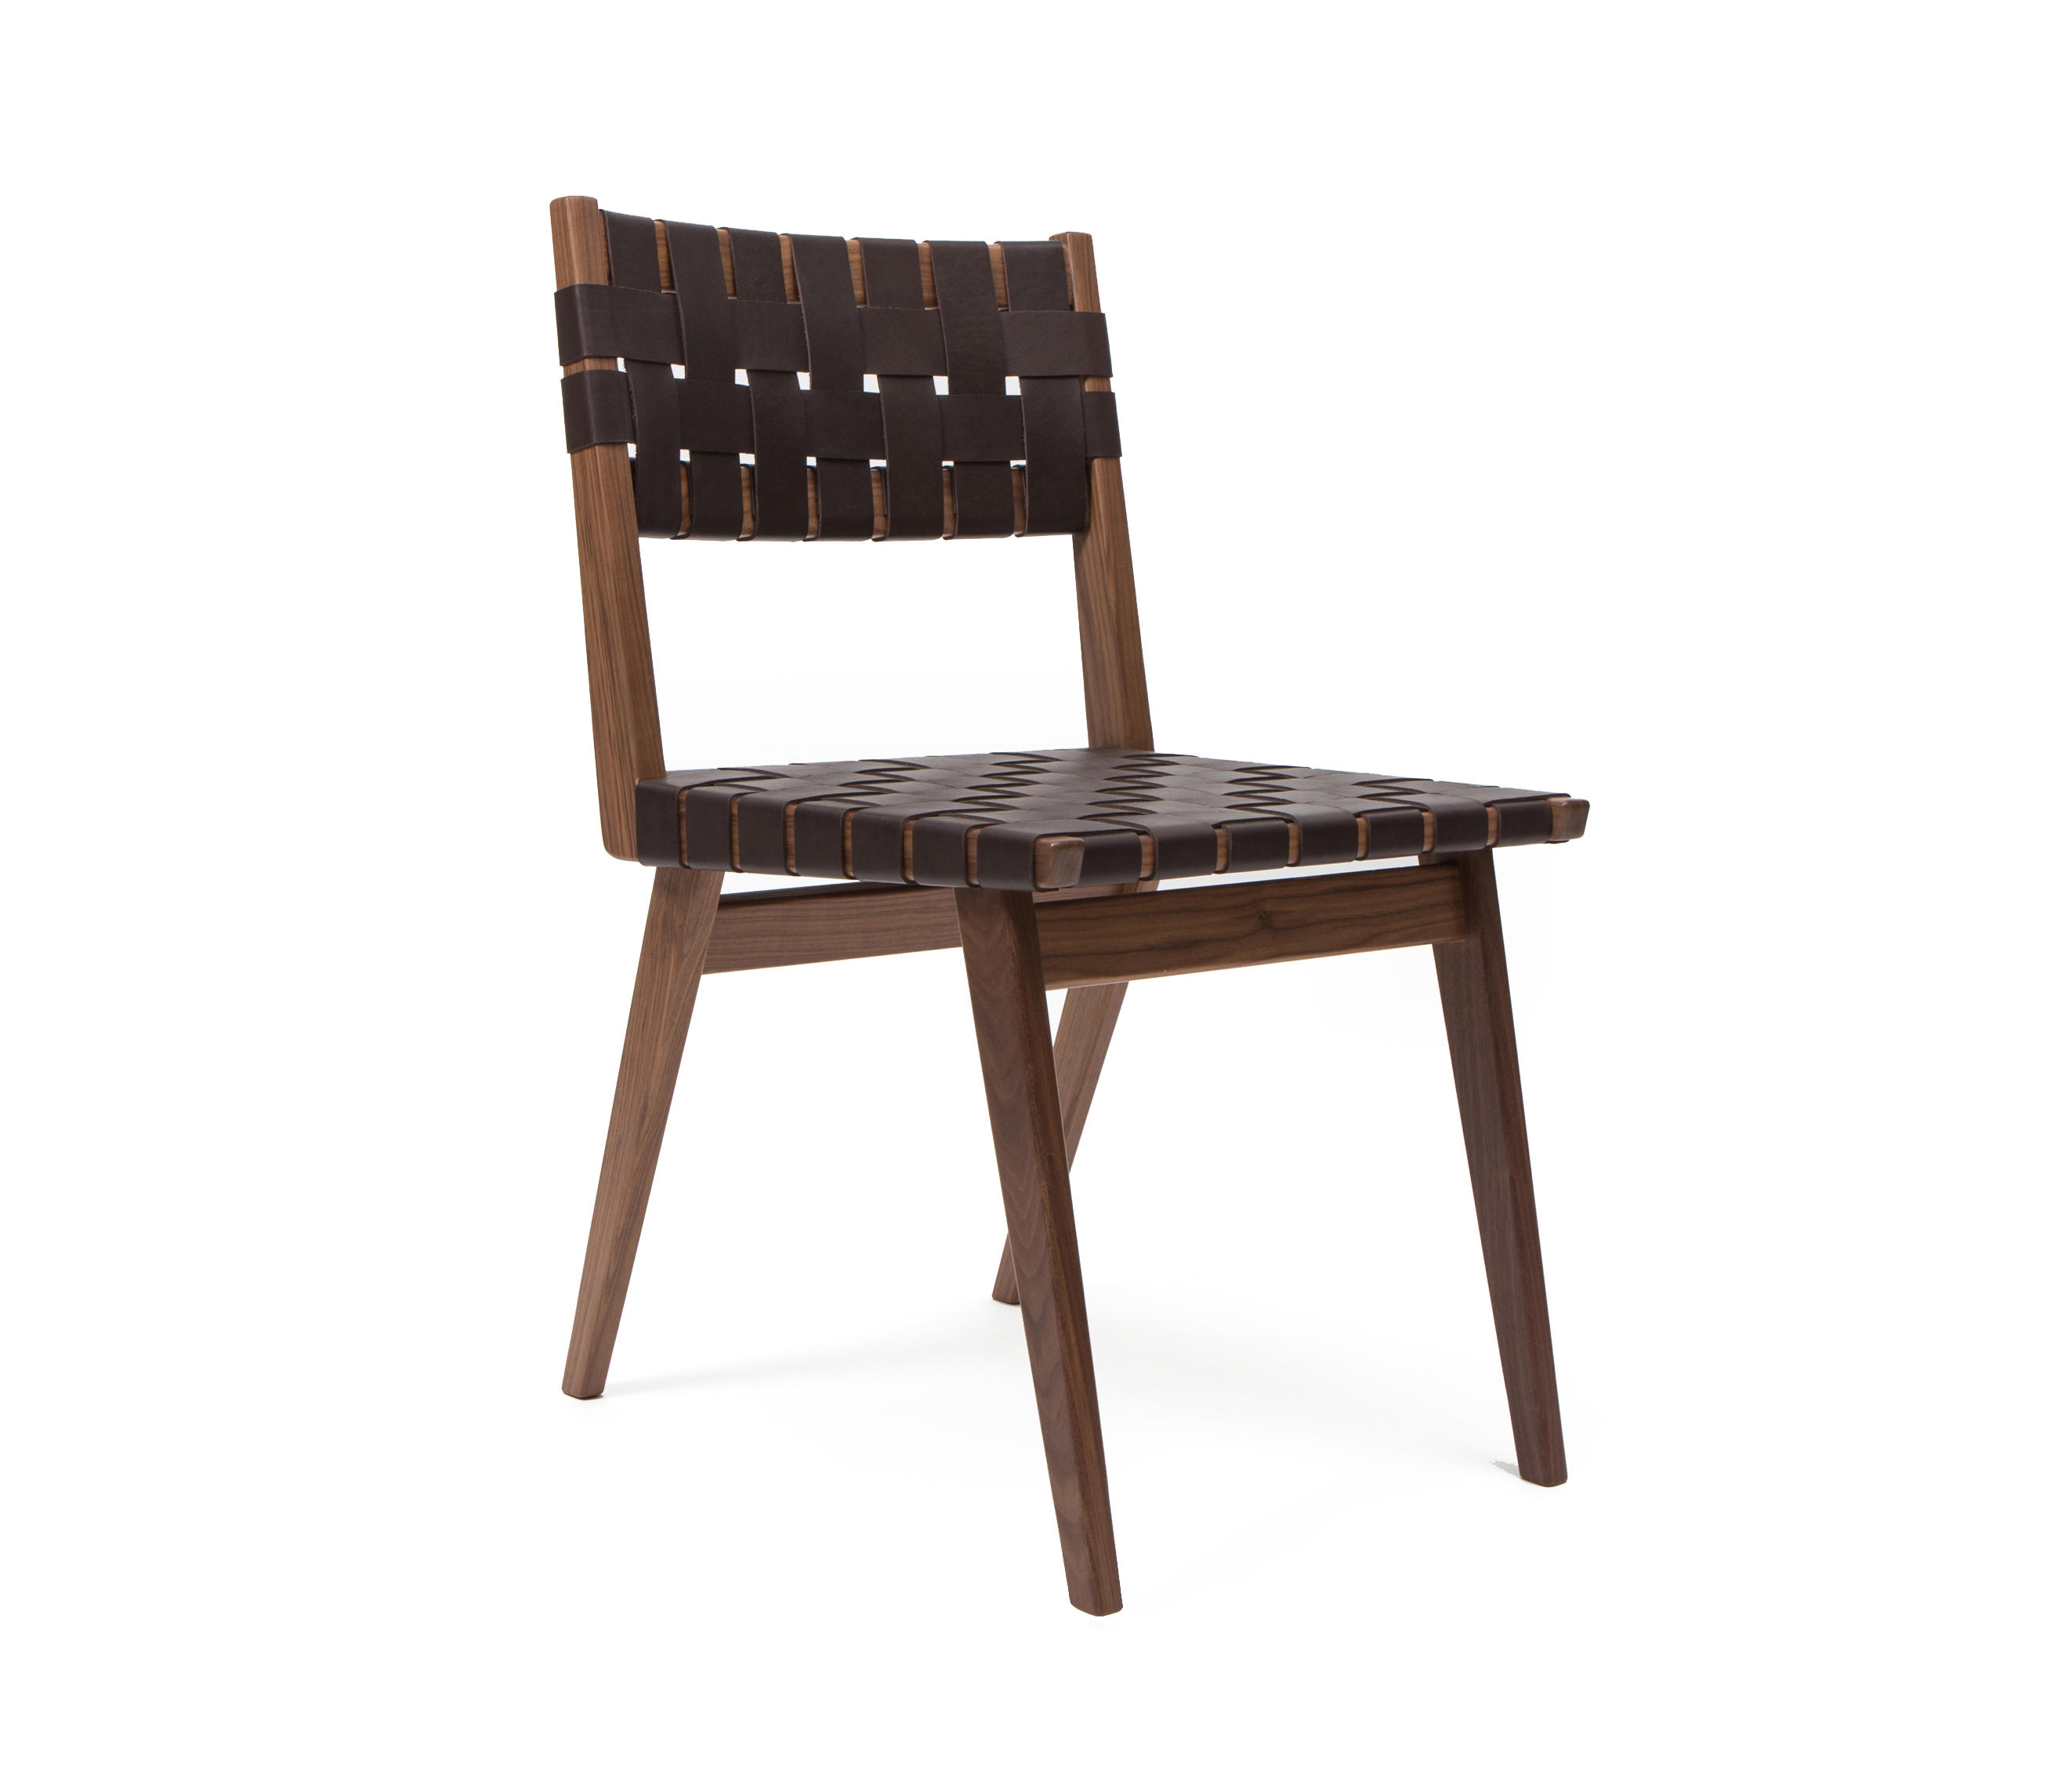 Woven Leather Chair Woven Leather Dining Chair Restaurant Chairs From Smilow